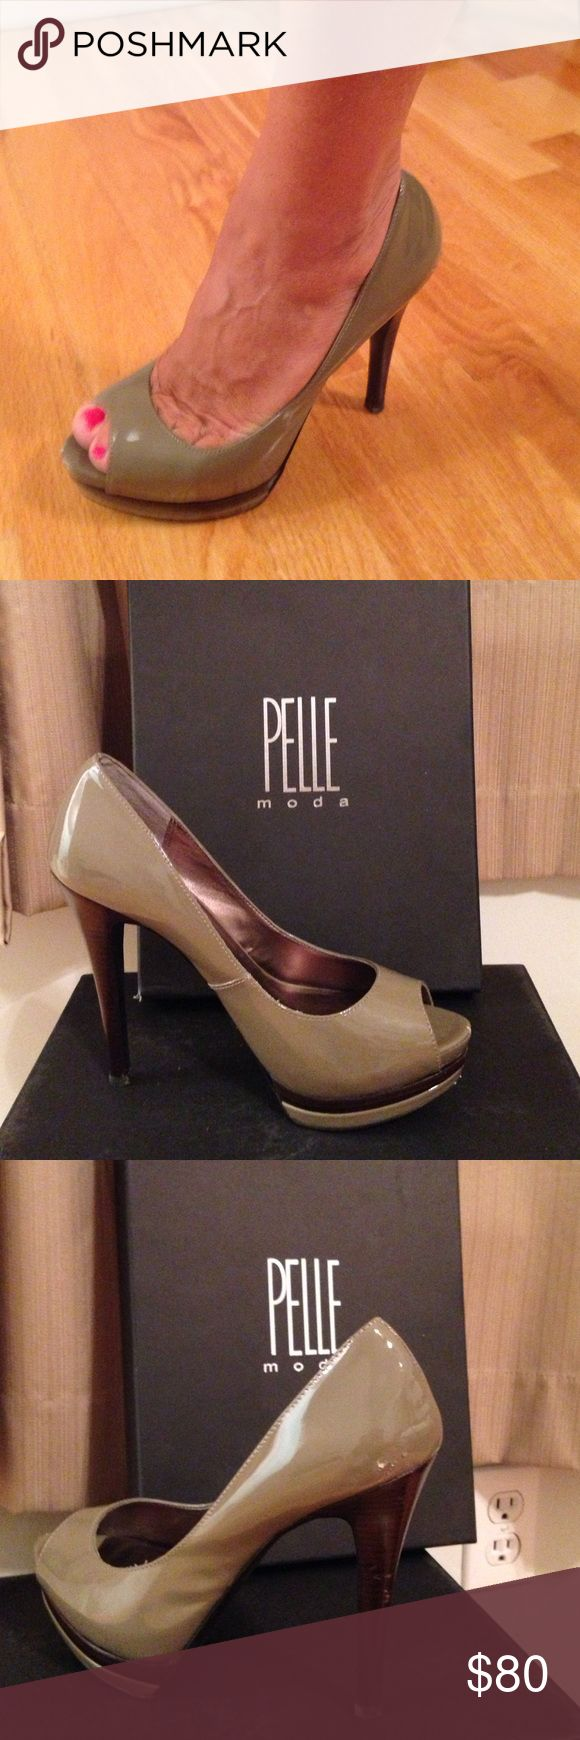 Pelle Moda shoes Taupe patent leather. Left foot shoe has tiny scuff marks. Pelle Moda Shoes Heels